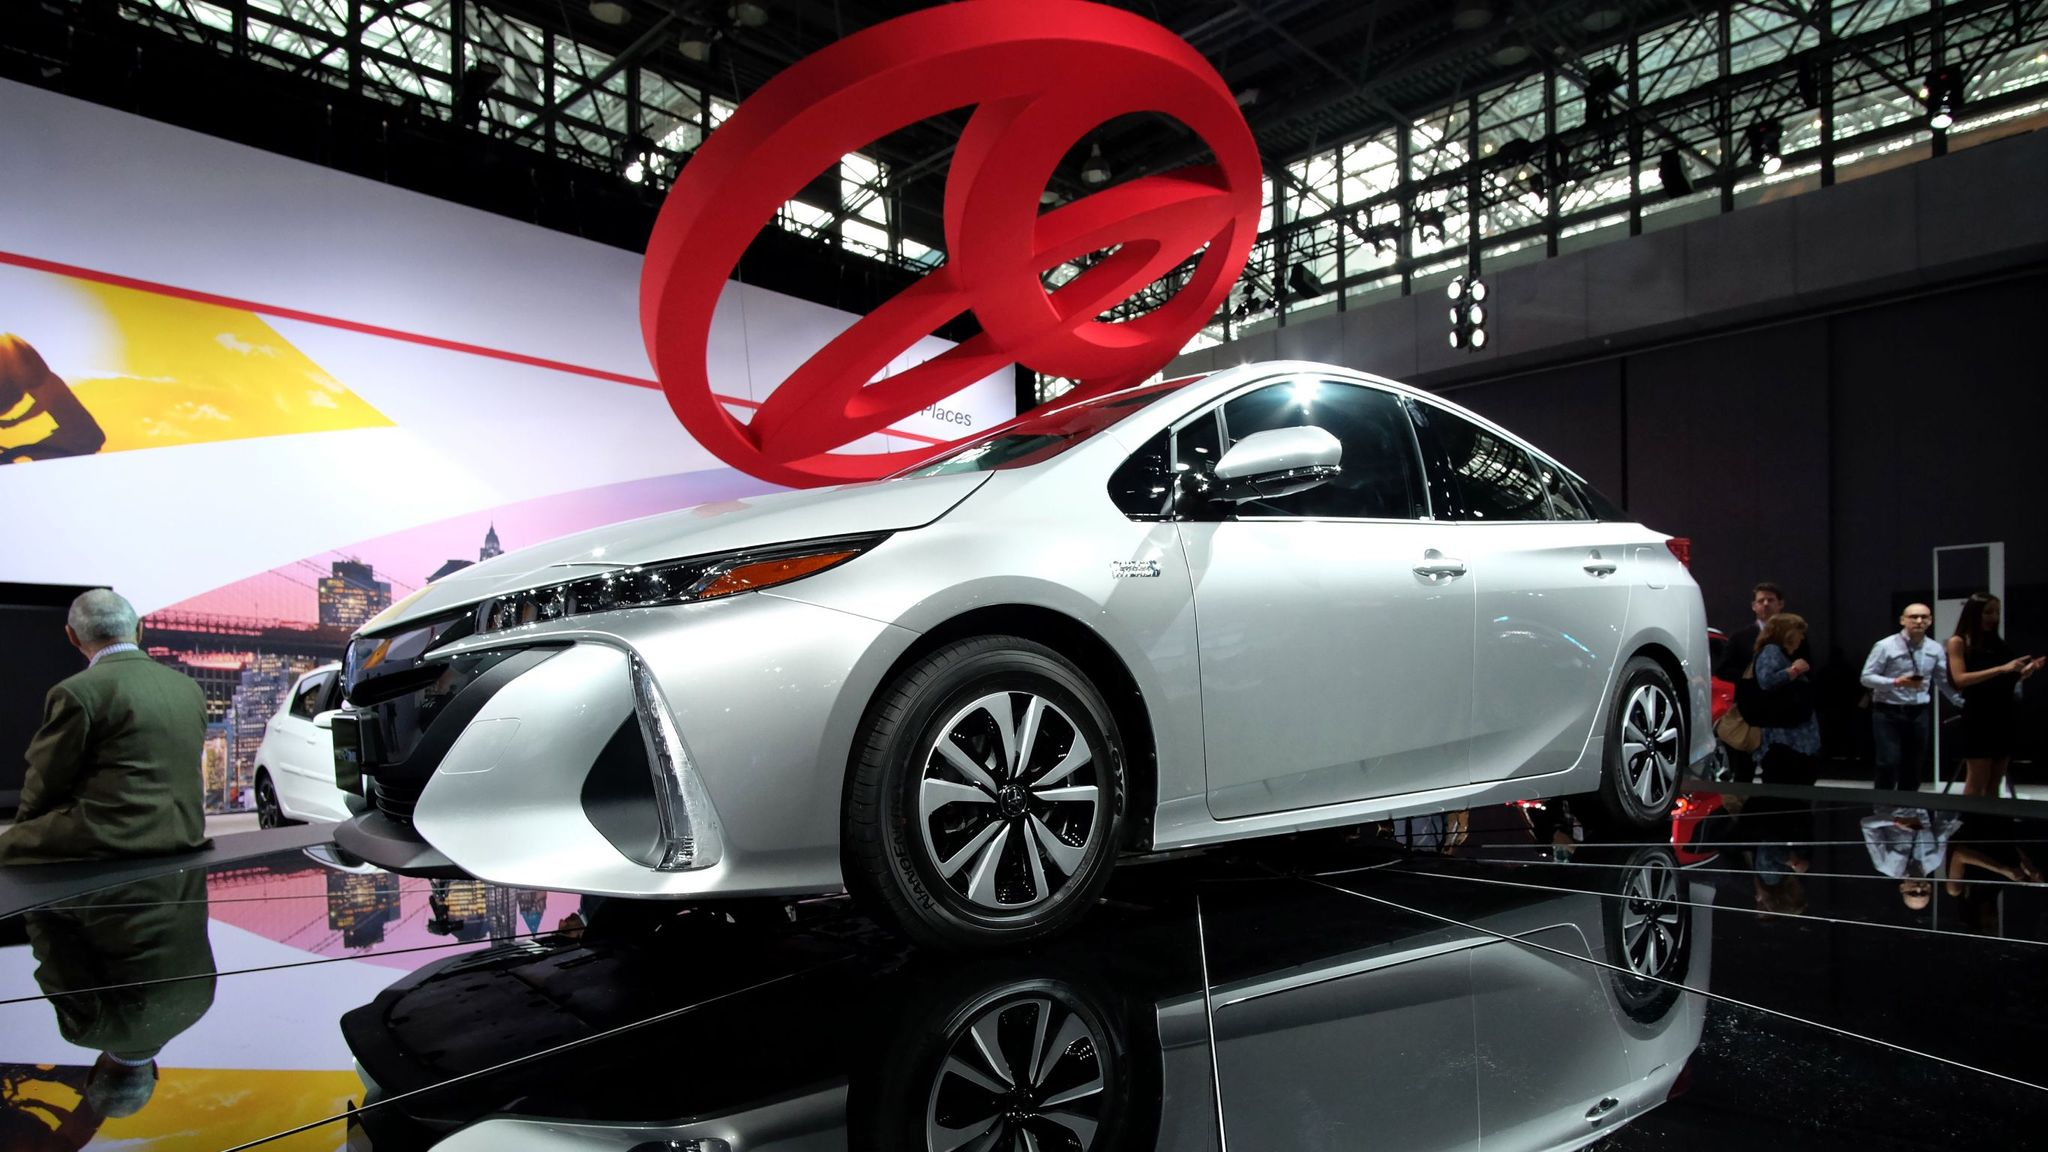 Toyota recalls 55,000 hybrids in UK over 'stalling' fault